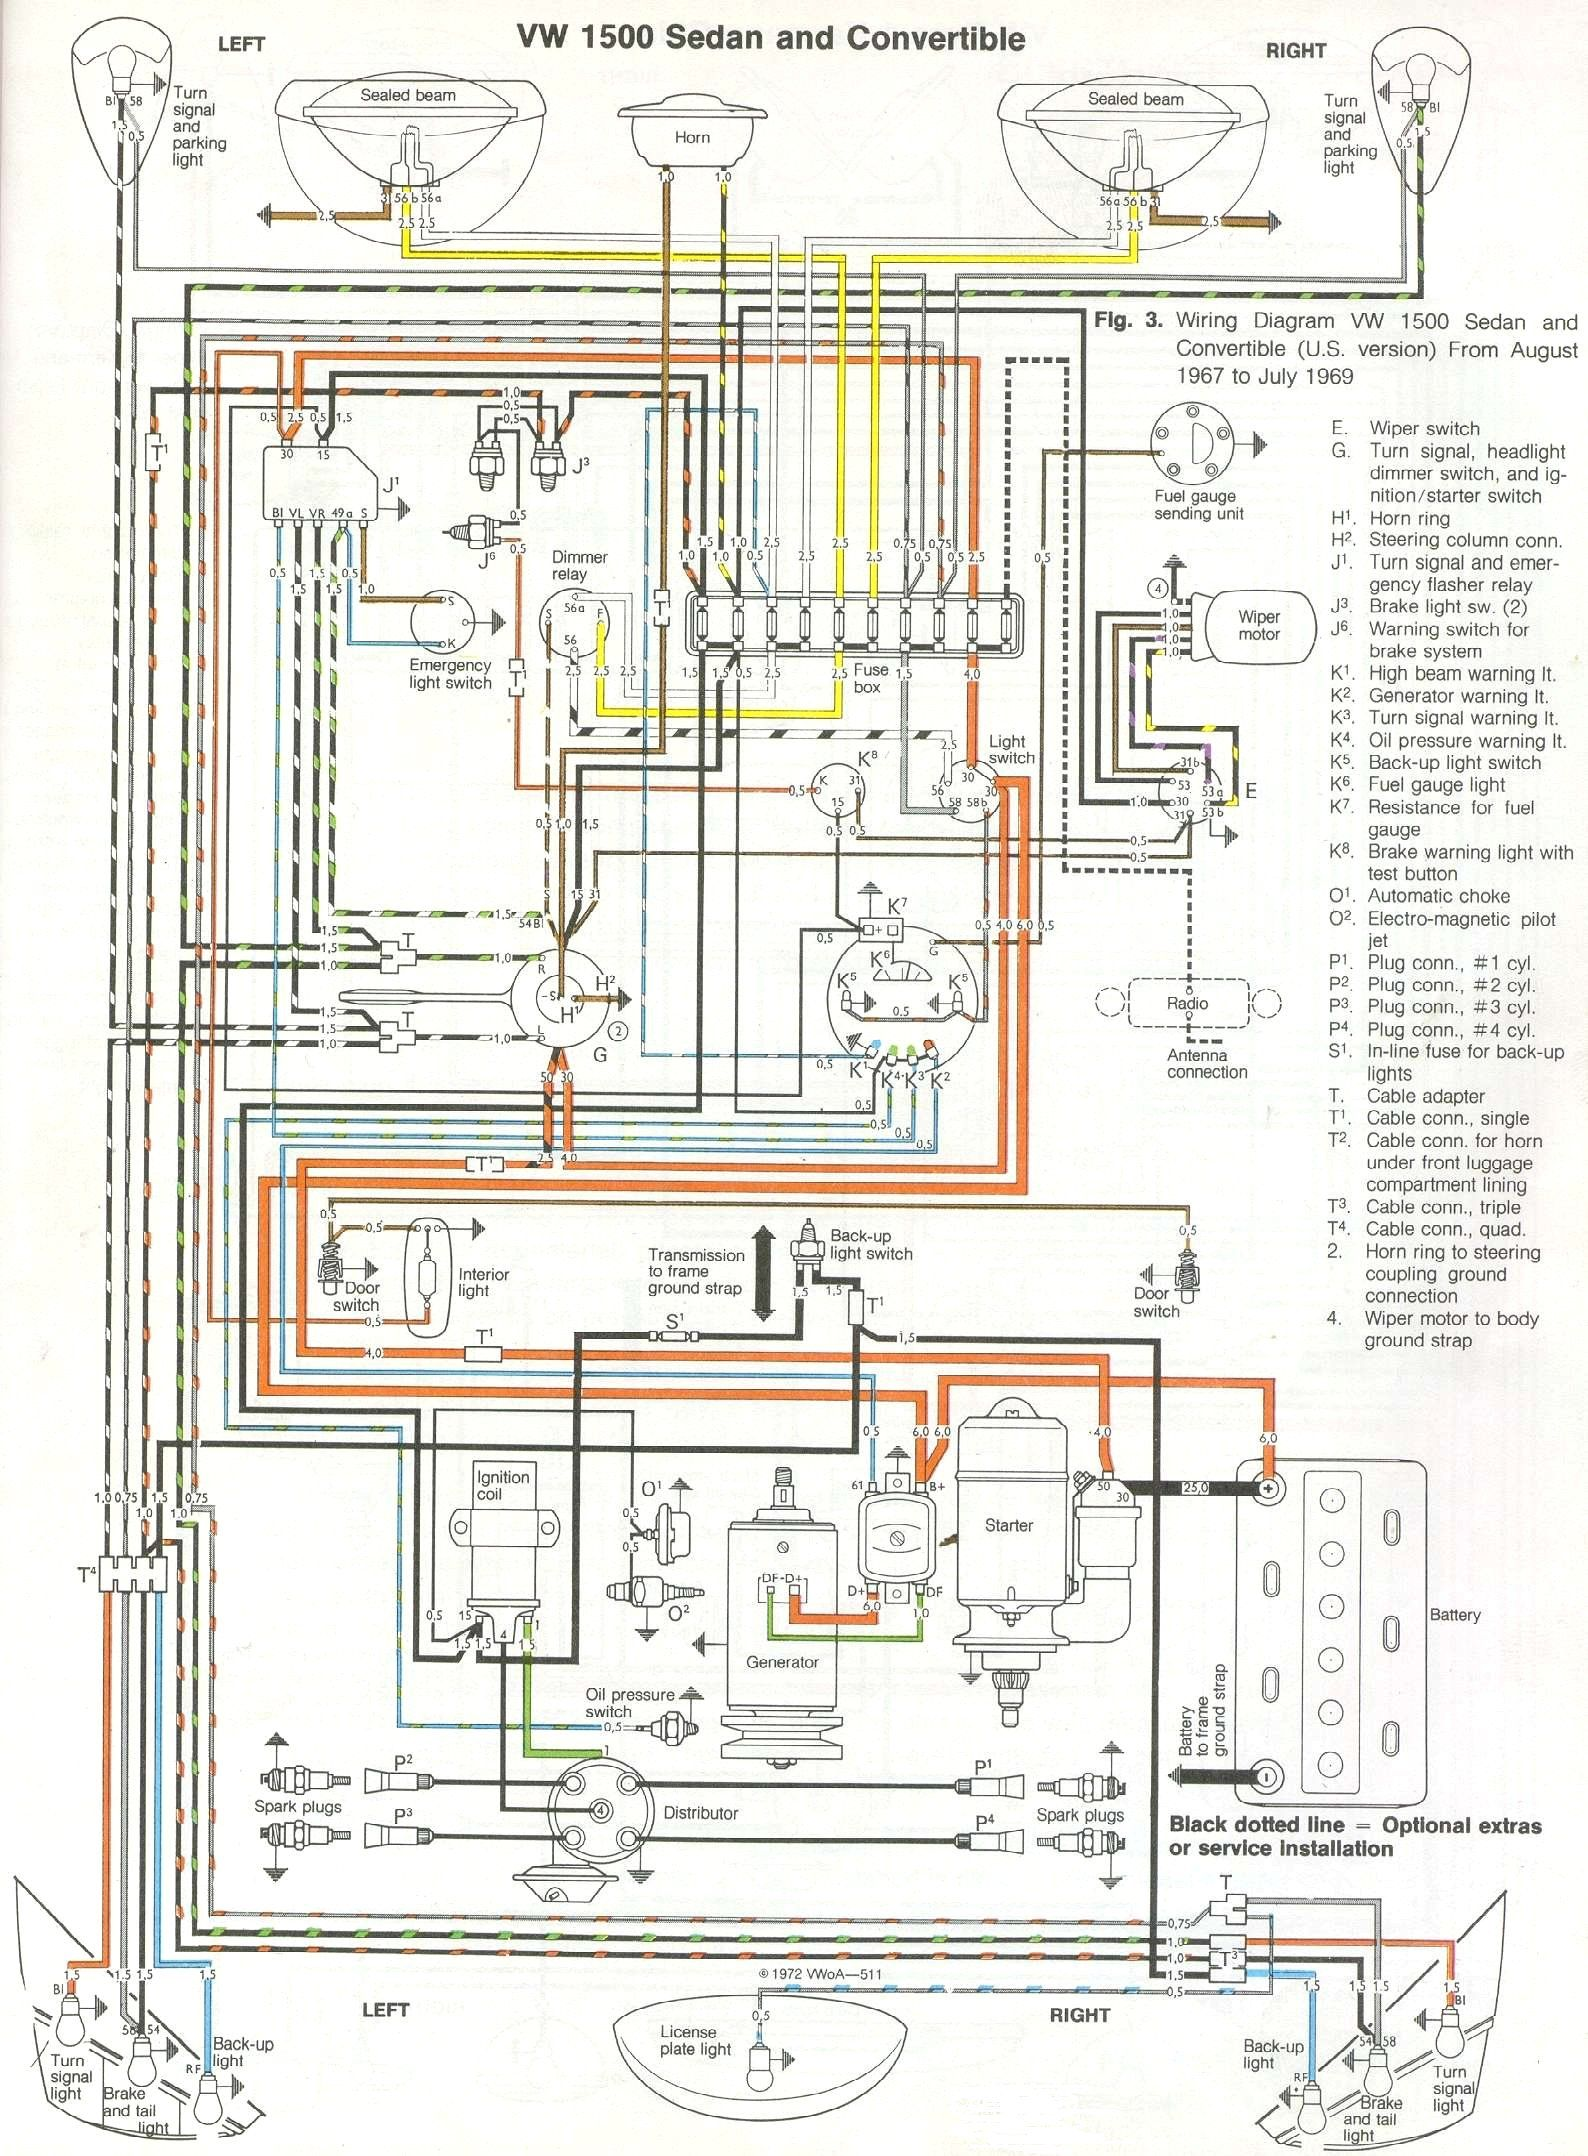 1968 69 beetle wiring diagram (usa) thegoldenbug com engine Volkswagen Beetle Wiring Diagram